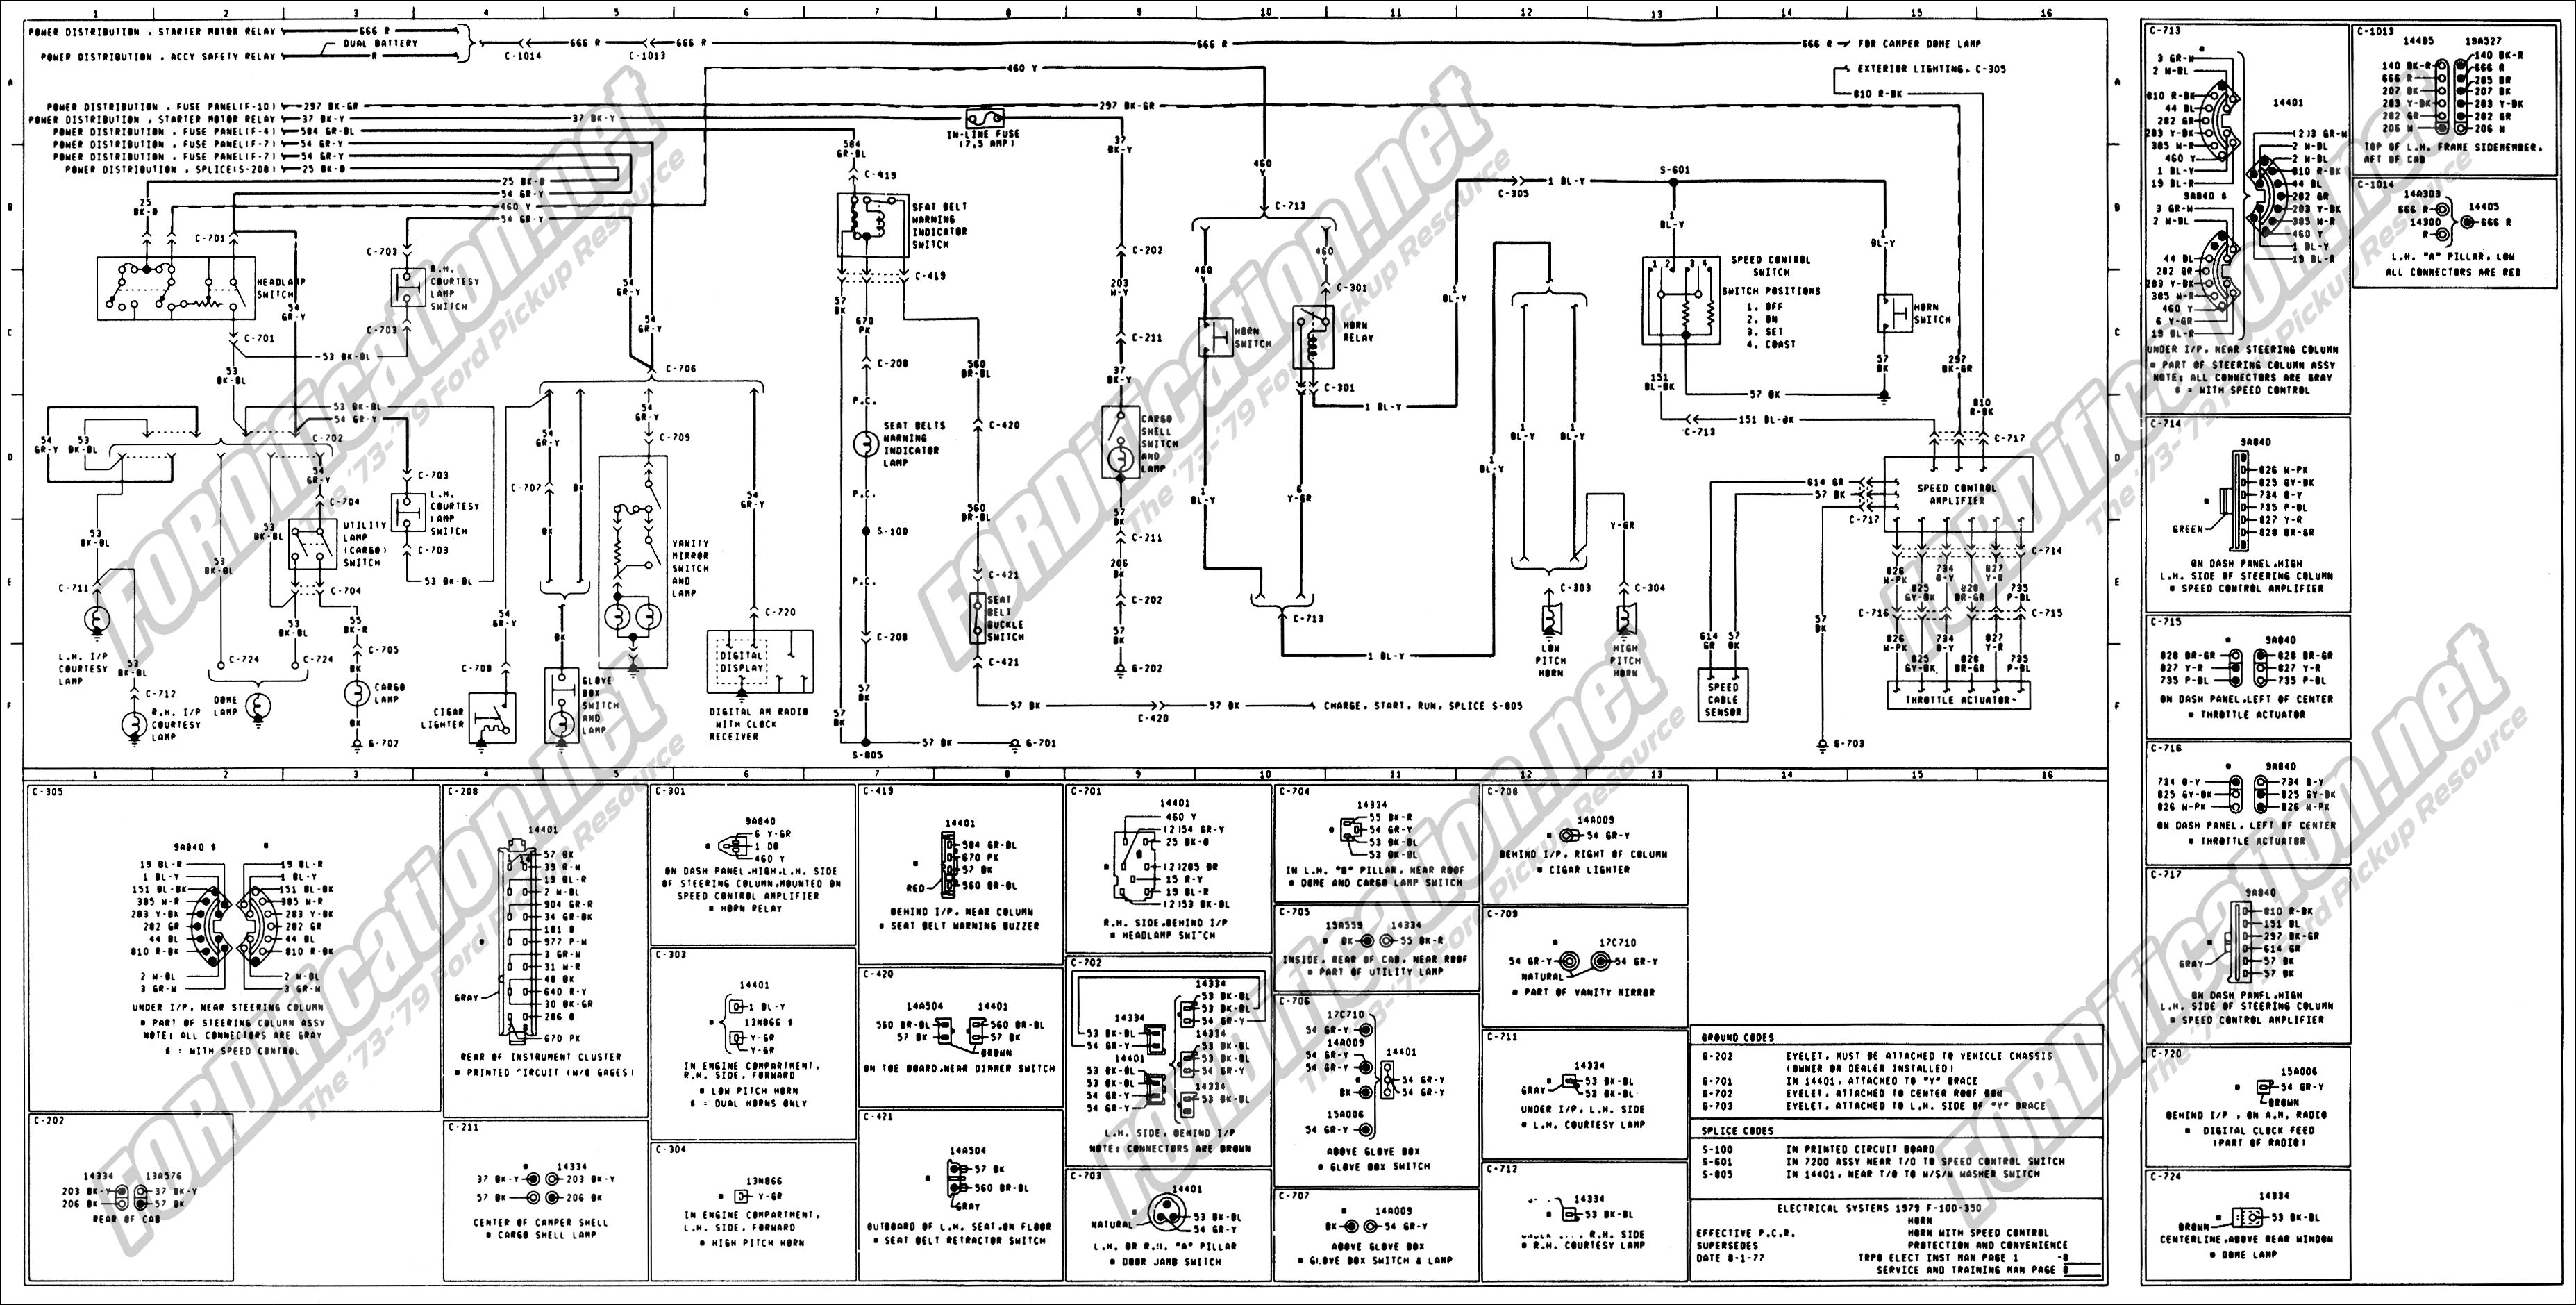 wiring_79master_8of9 1973 1979 ford truck wiring diagrams & schematics fordification net 1978 bronco fuse box diagram at reclaimingppi.co